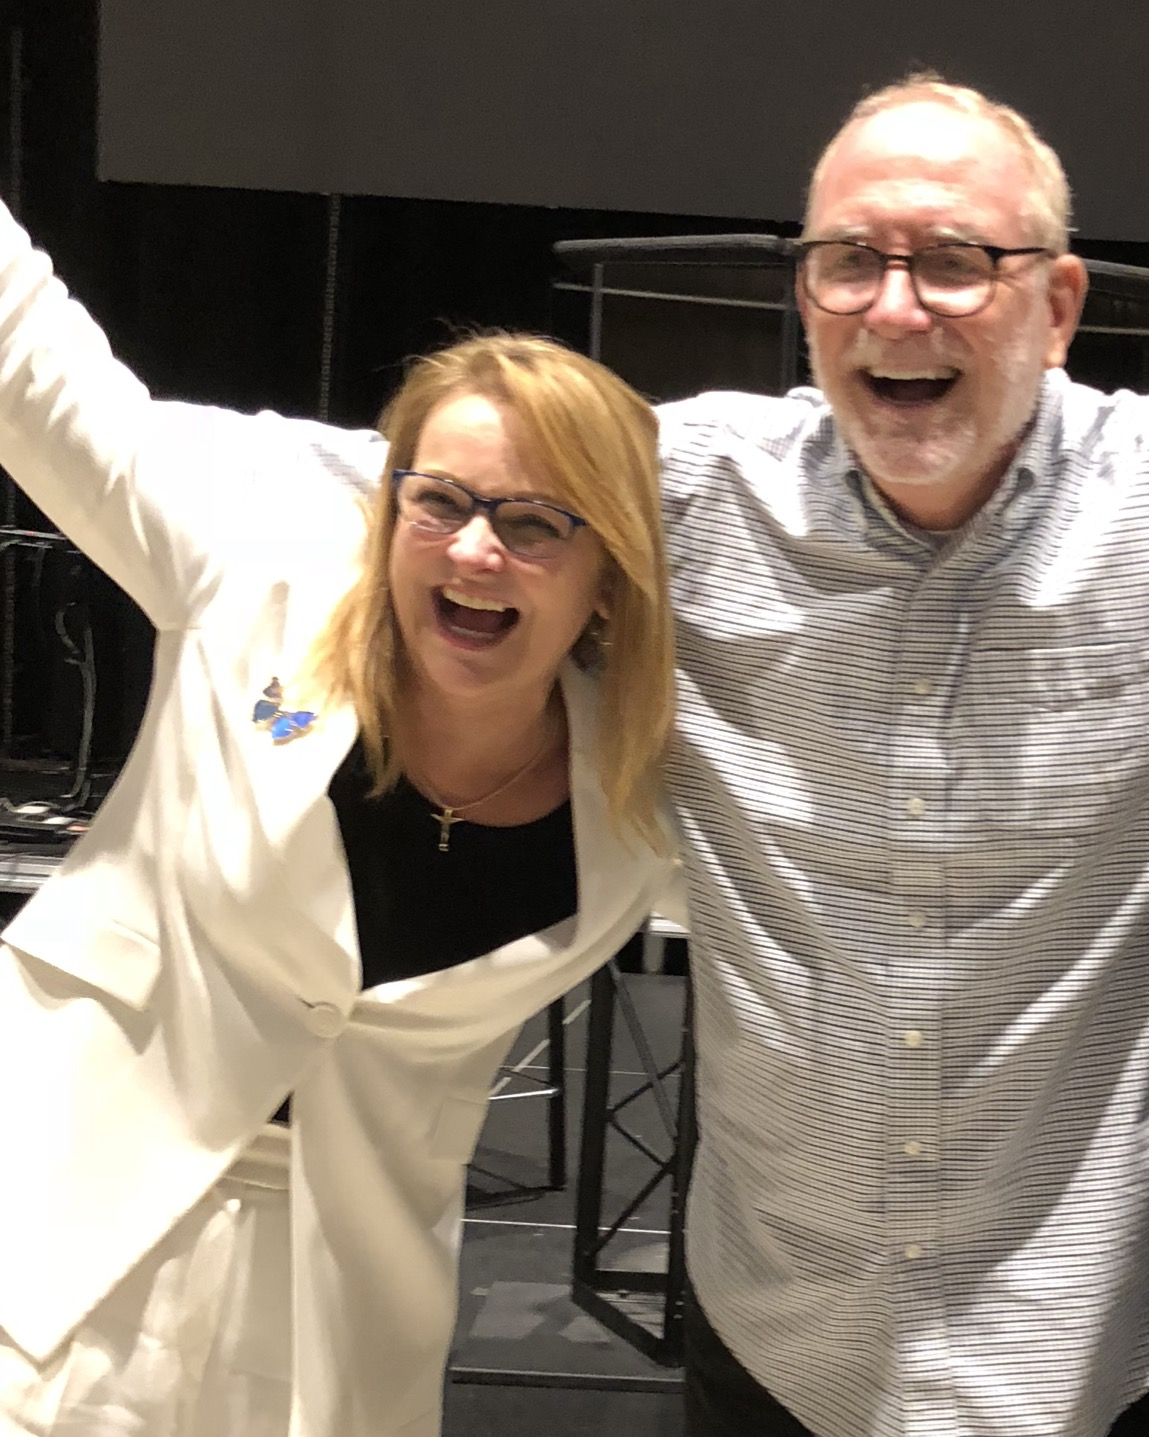 Rhonda Sciortino and Bob Goff